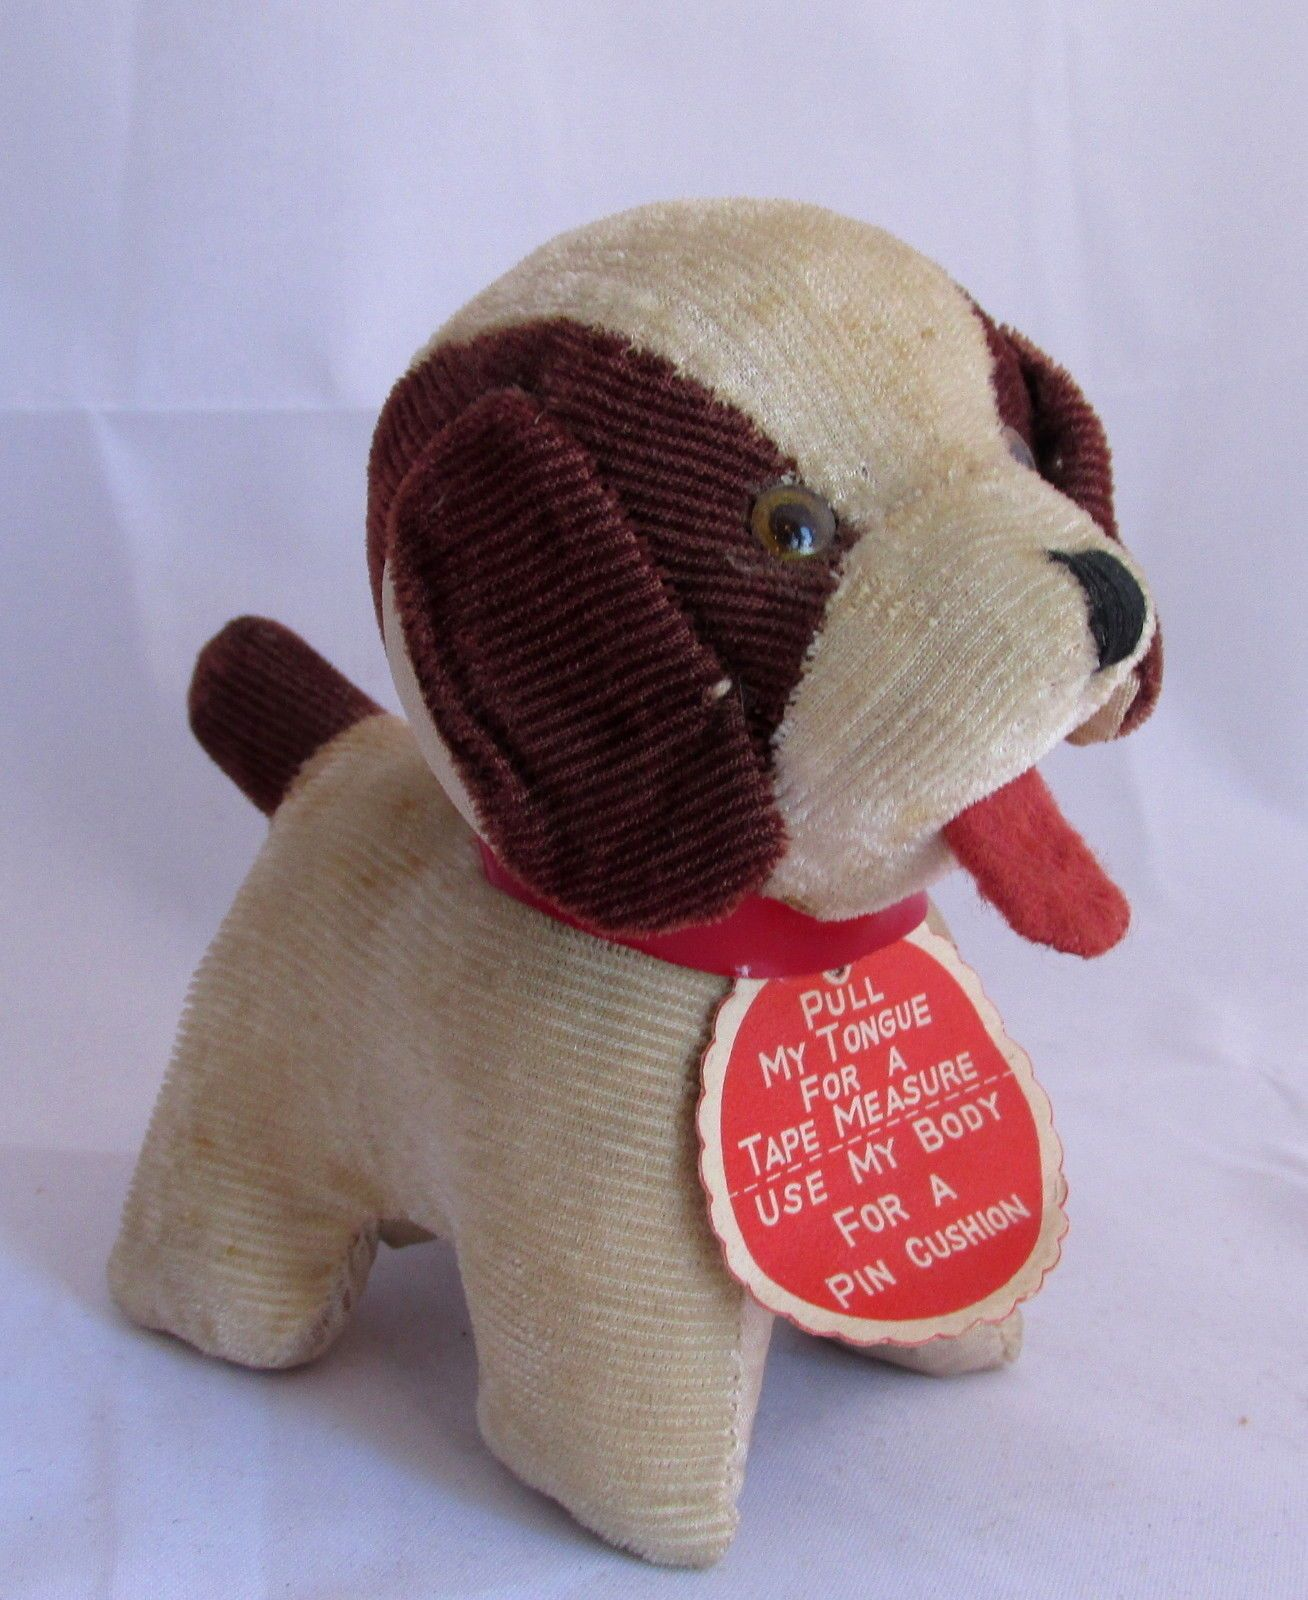 Vintage Stuffed Animal Puppy Dog Sewing Pin Cushion Body Tape Measure Tongue | eBay